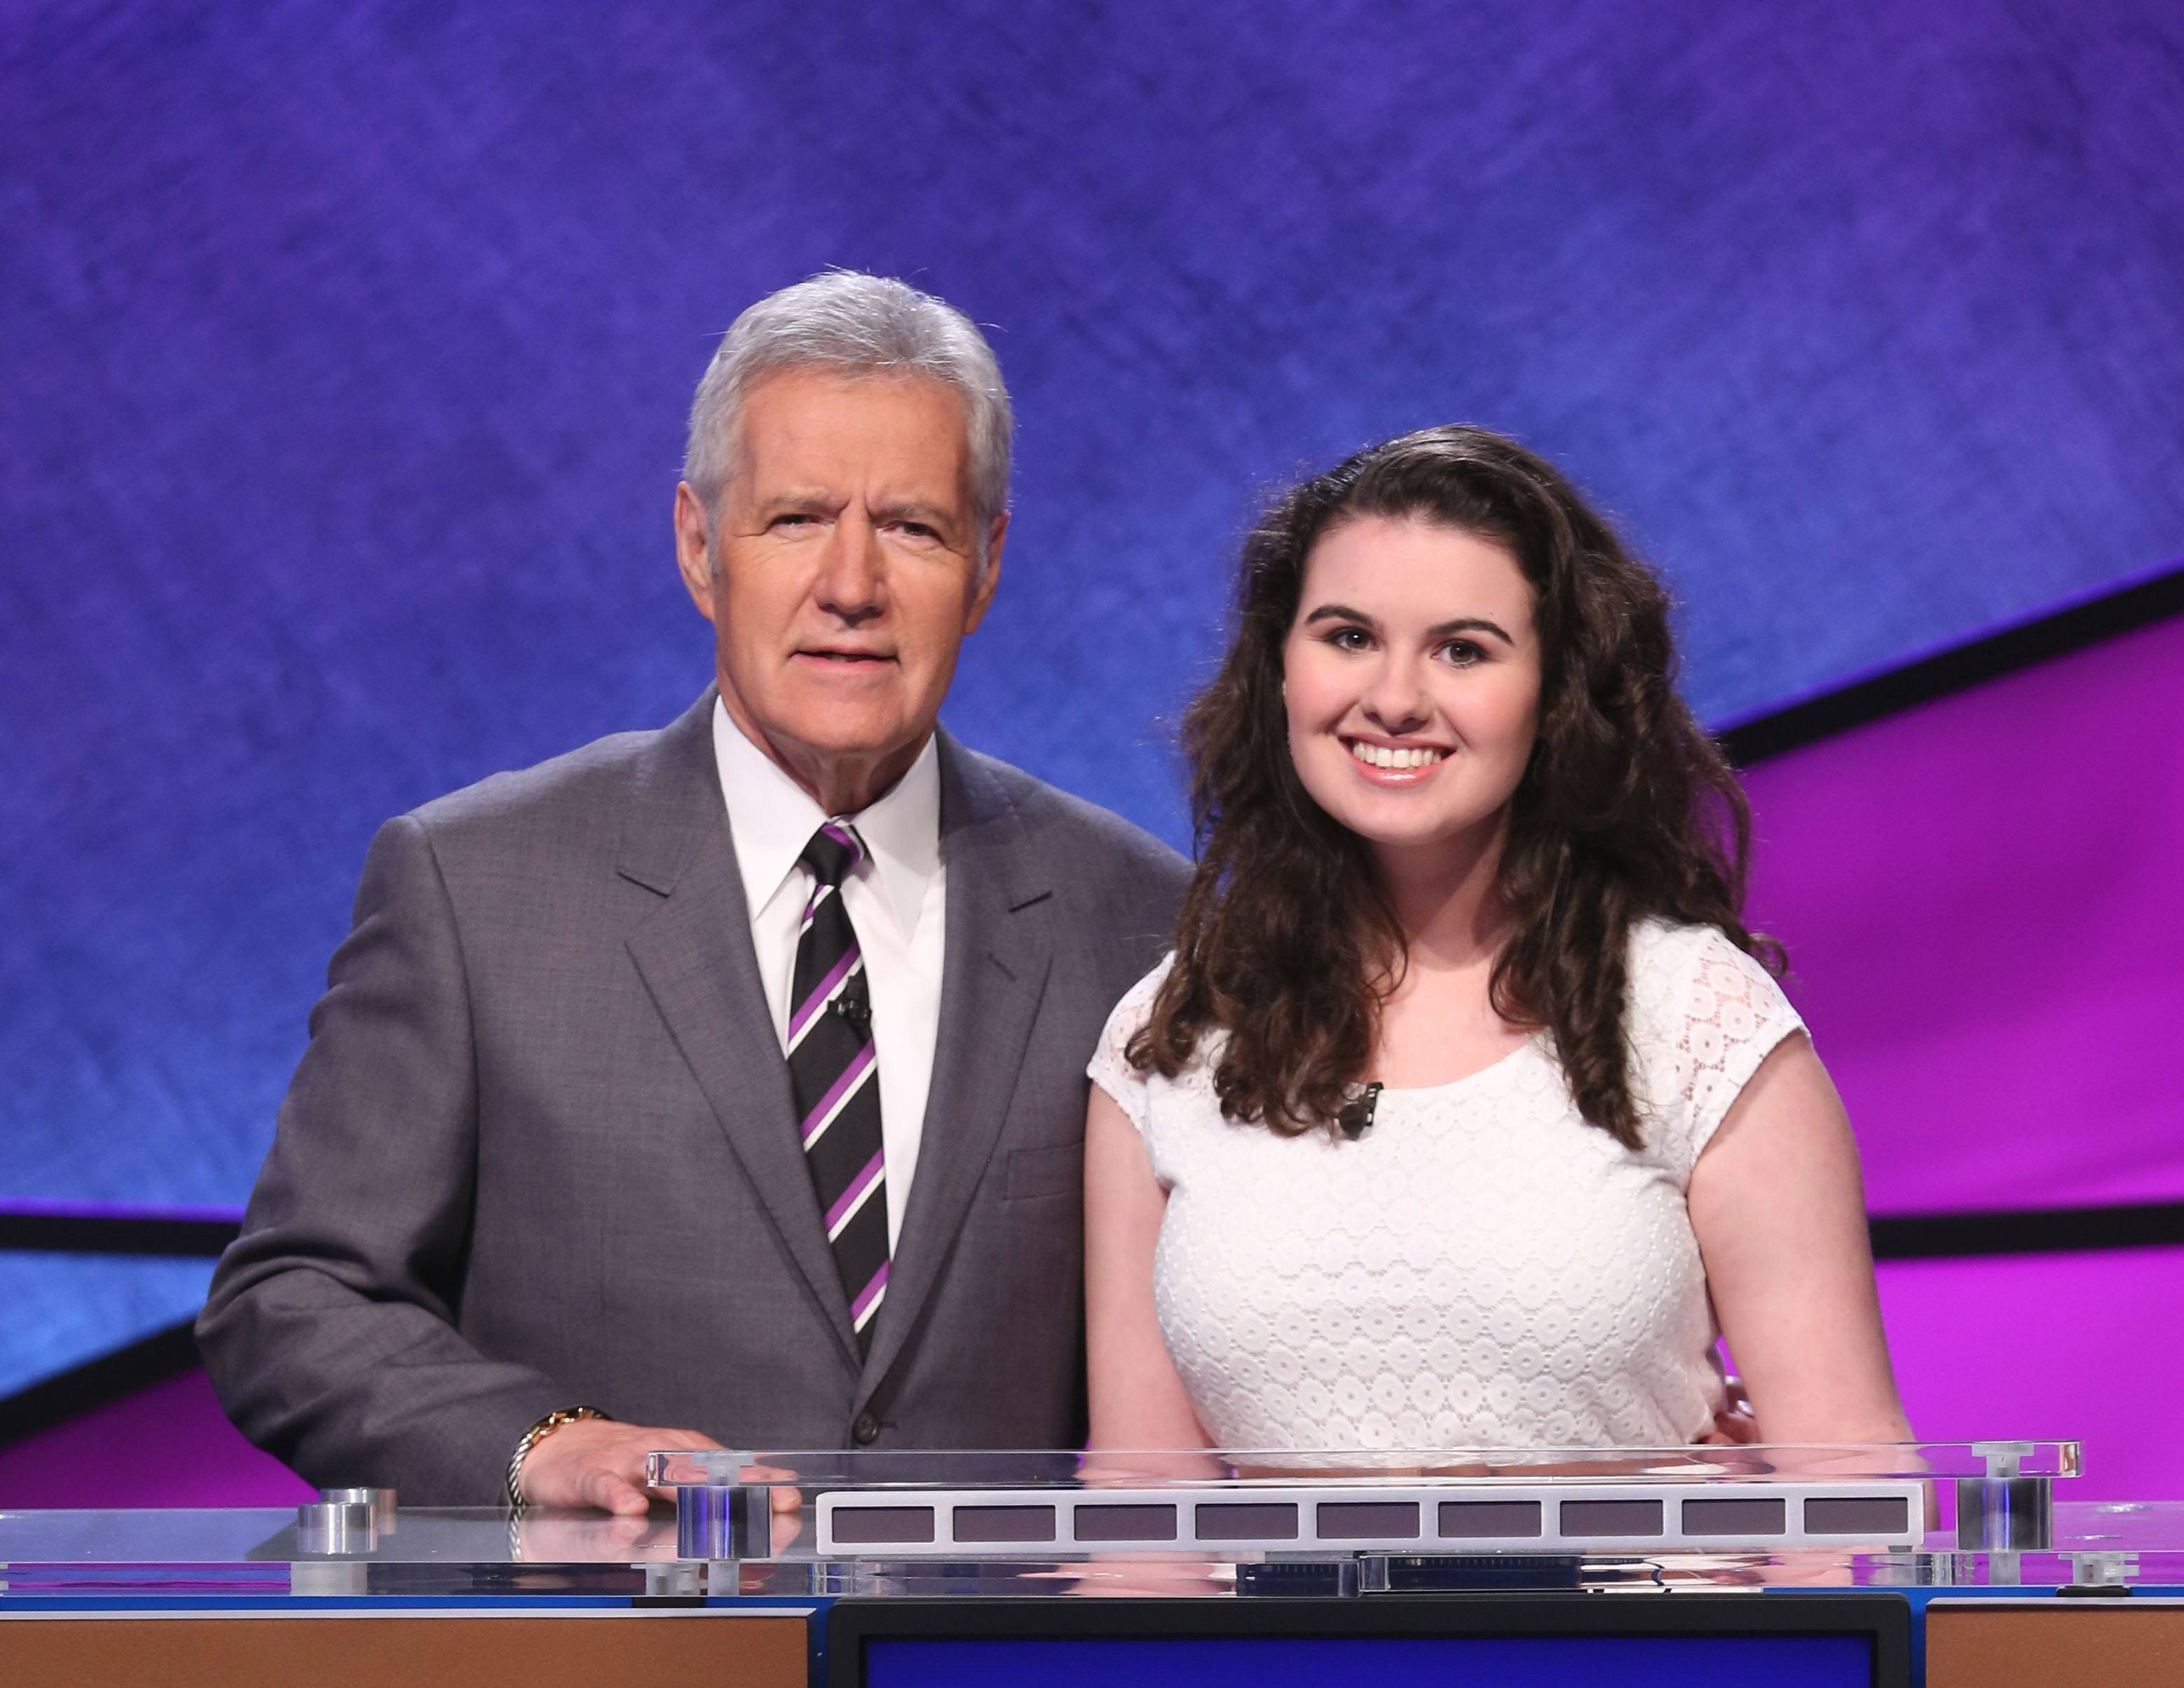 Arlington Heights teen ends Jeopardy! run